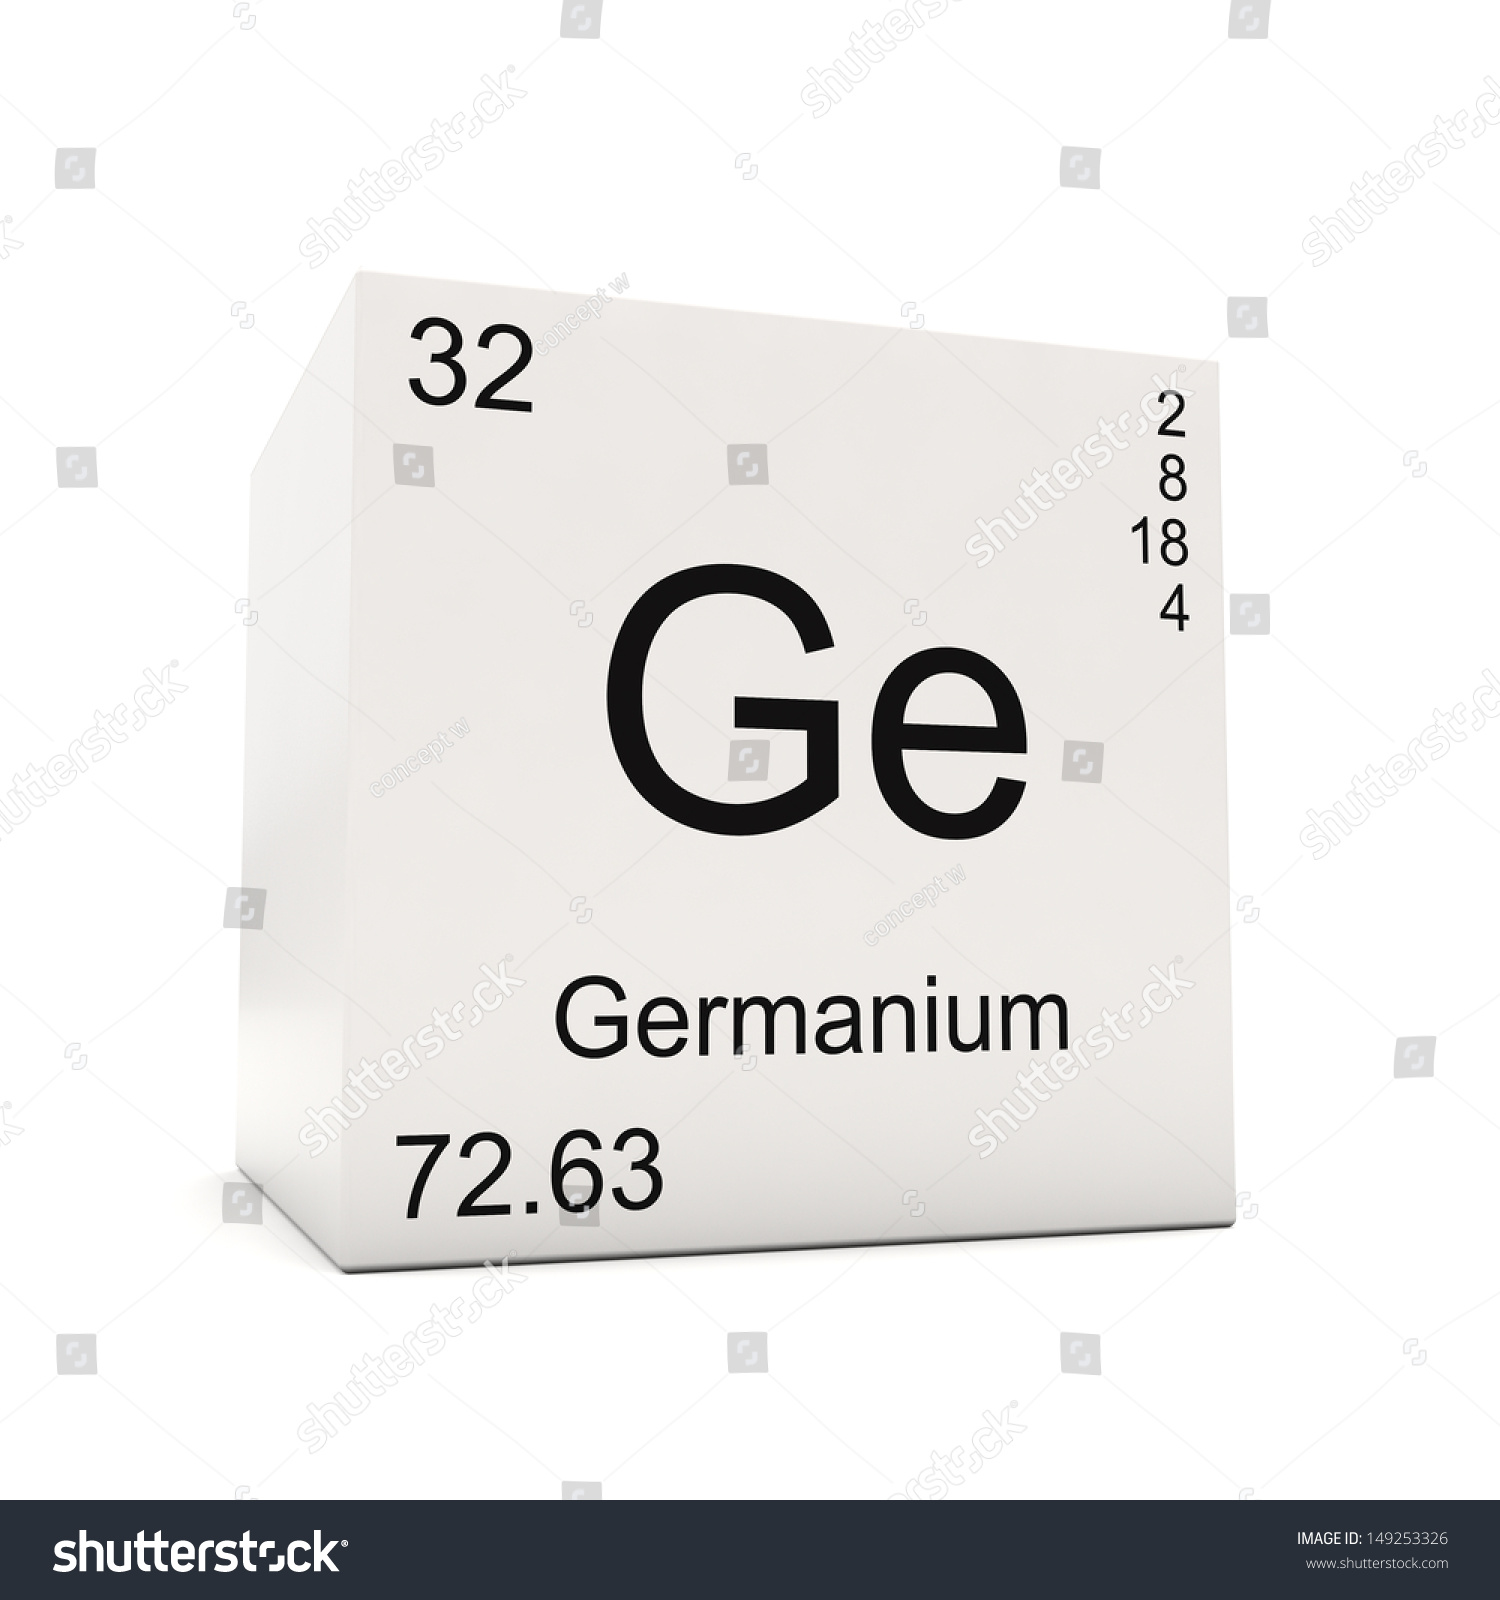 Germanium in periodic table choice image periodic table images germanium in periodic table choice image periodic table images cube germanium element periodic table isolated stock gamestrikefo Image collections